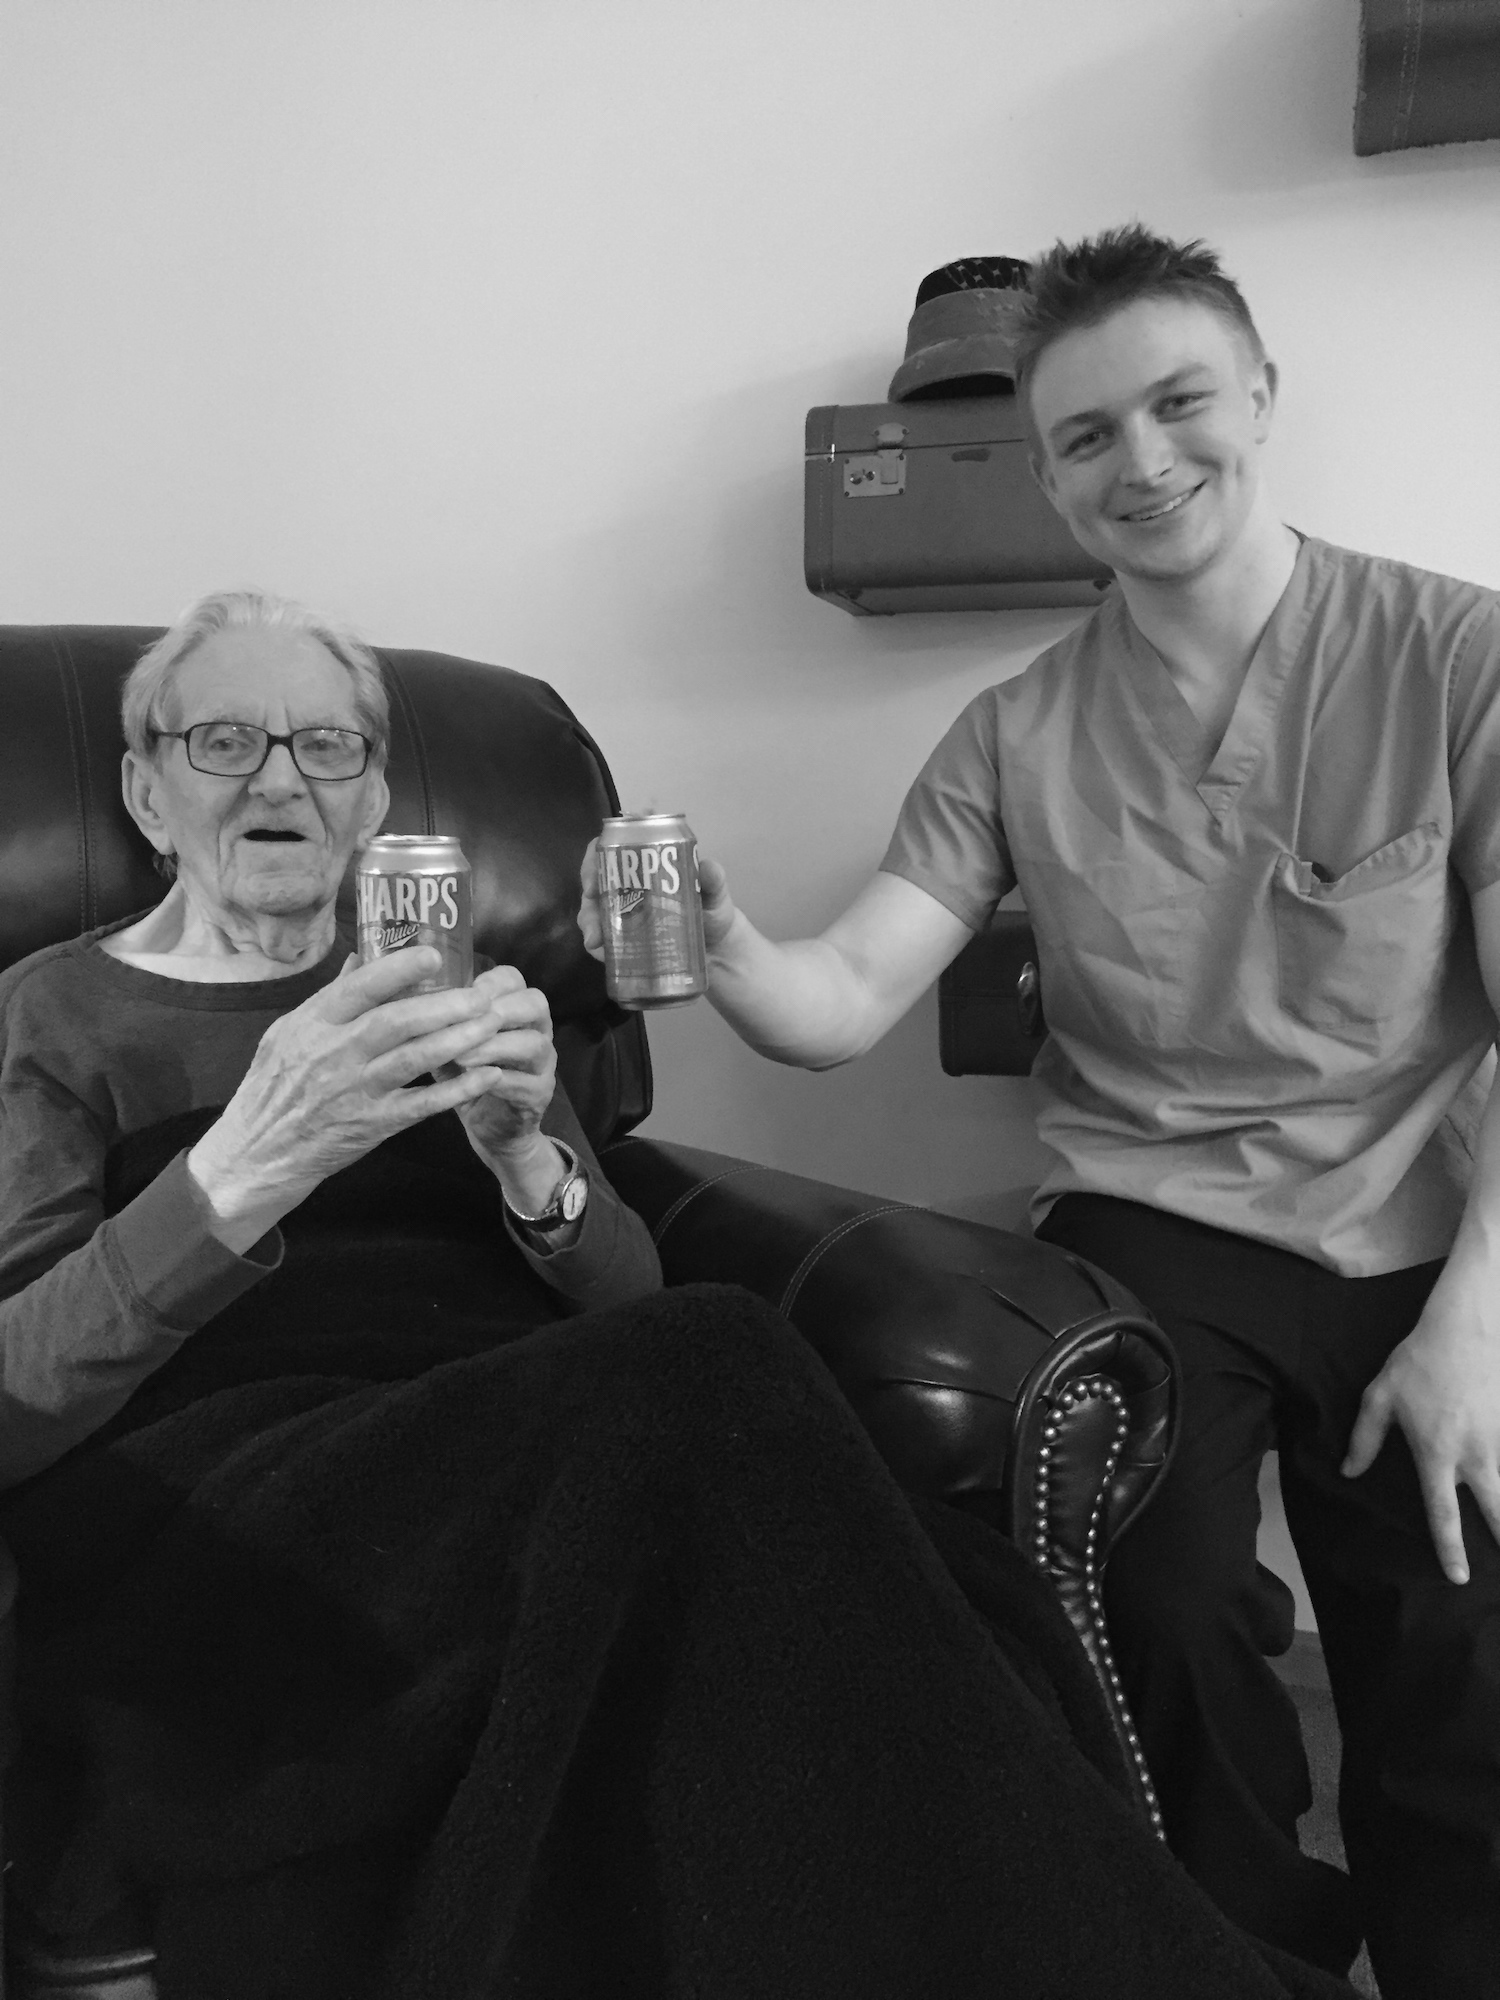 Memory care resident drinks a beer with companion